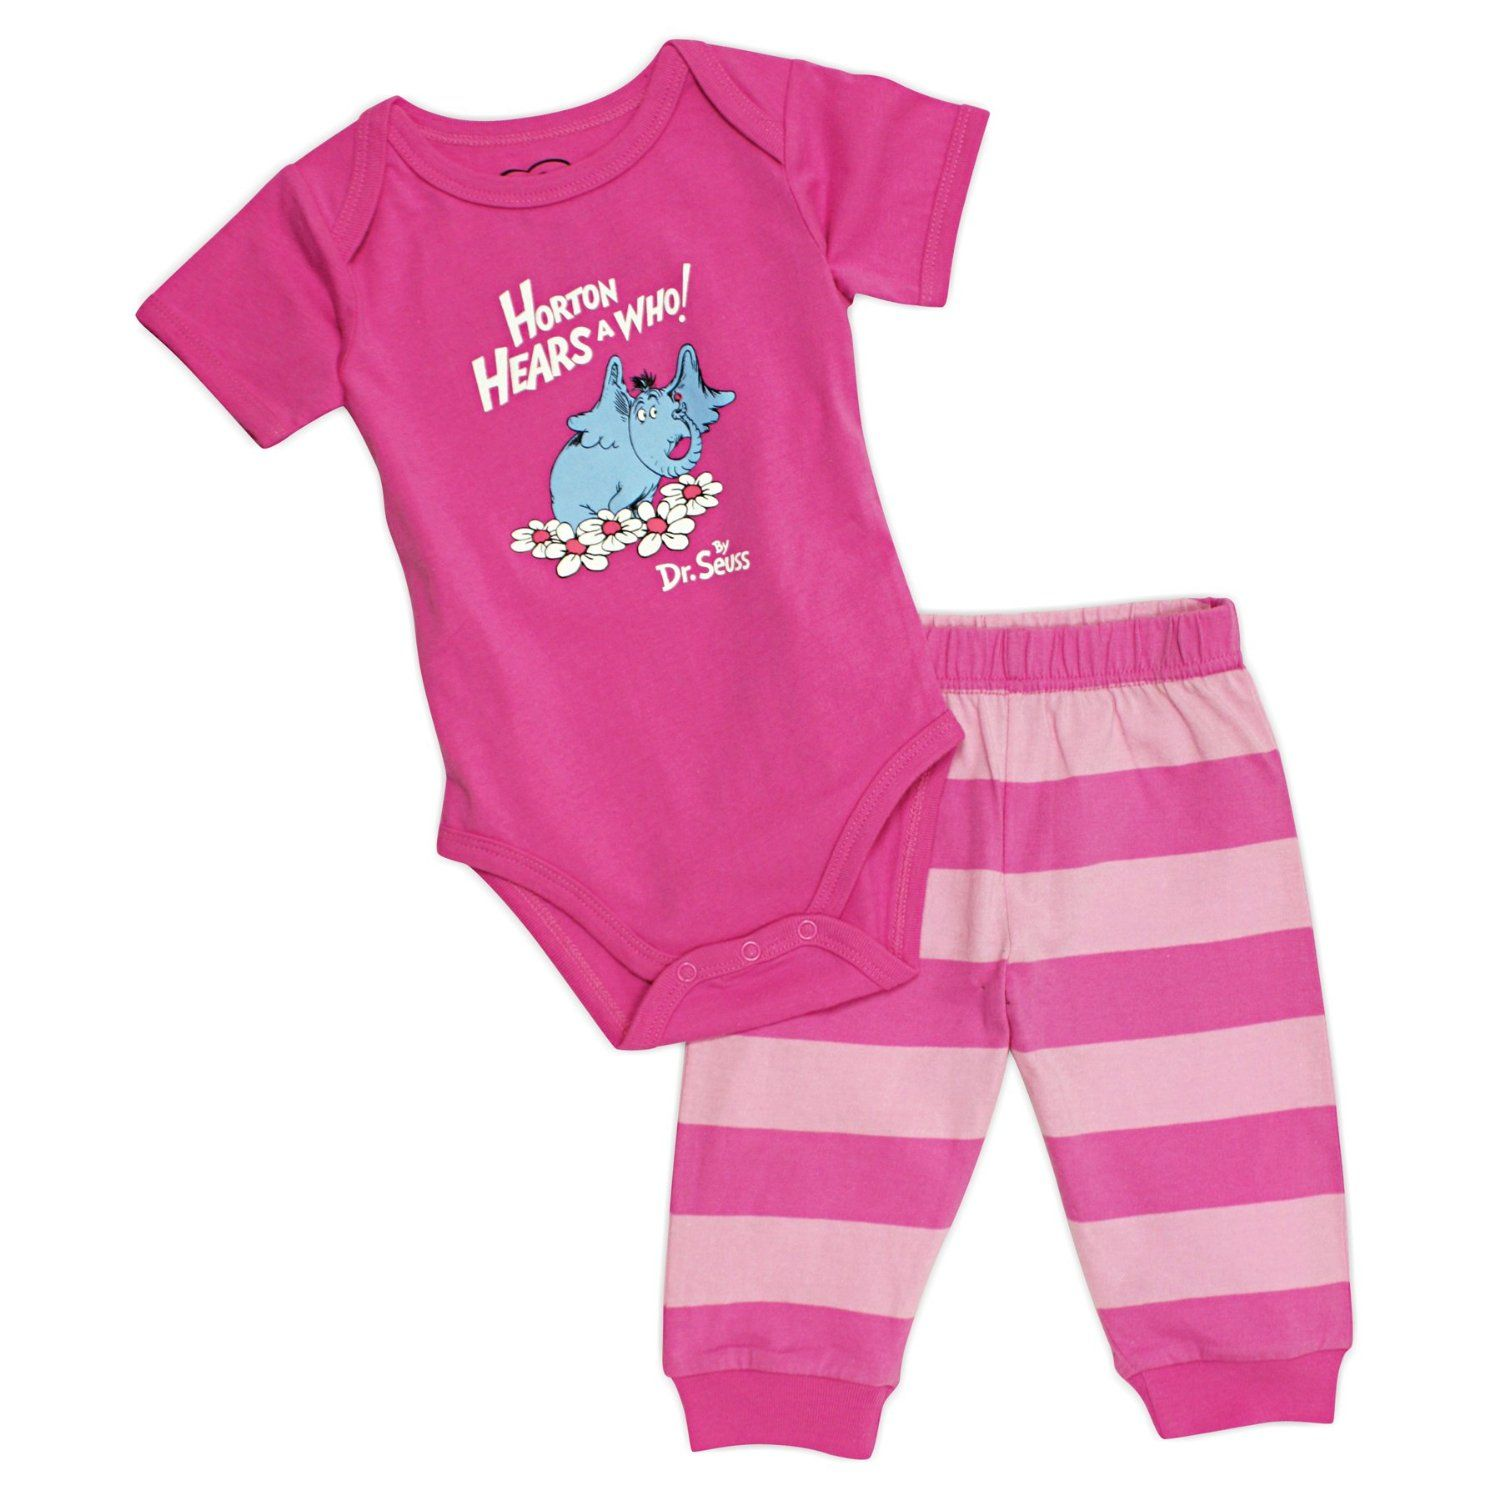 Dr. Seuss Baby Clothing On Sale | Shops, Dr. seuss and We